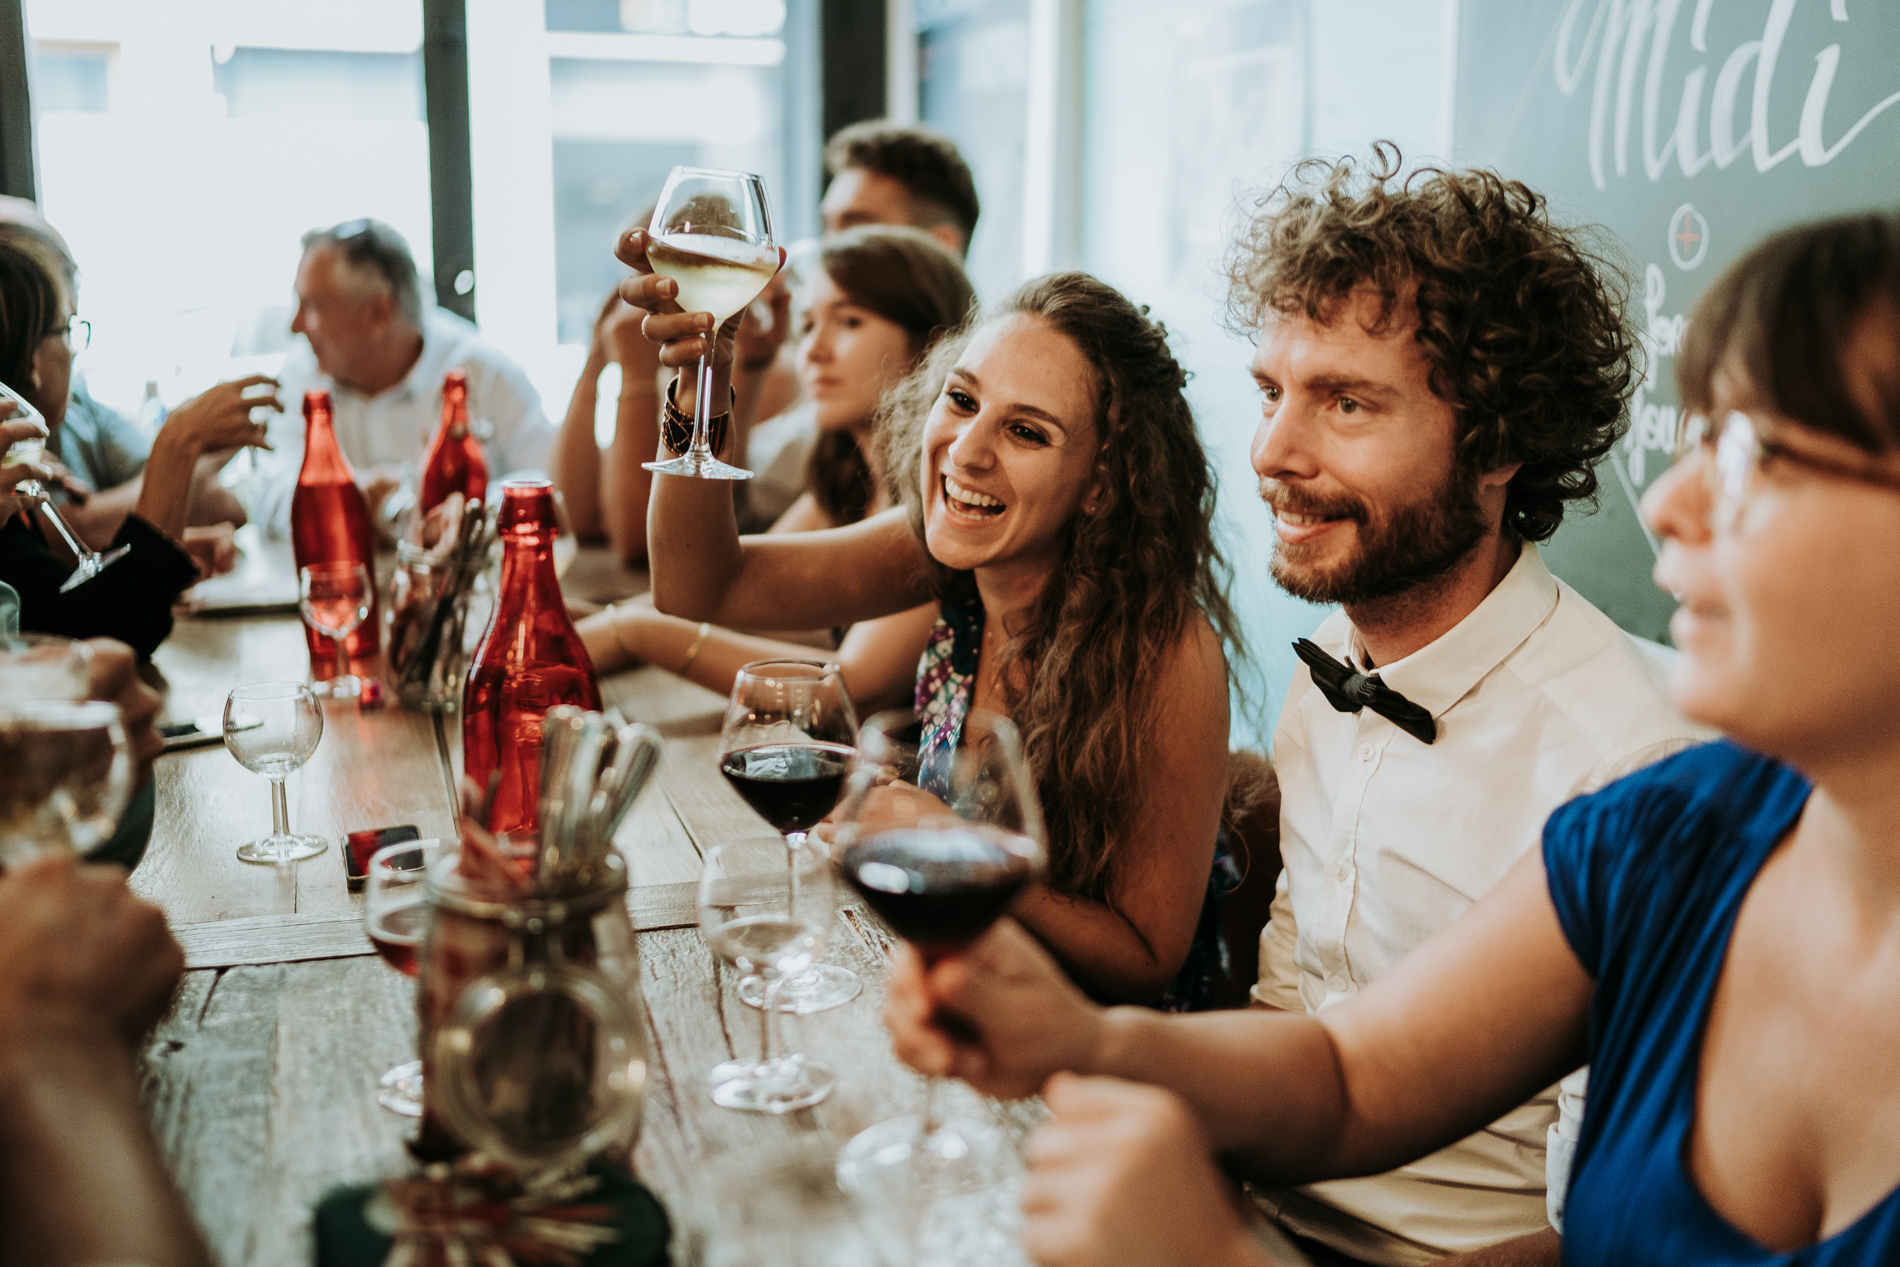 Documentary Wedding Photography in France | After the ceremony, the bride, groom, and their guests enjoy lunch together